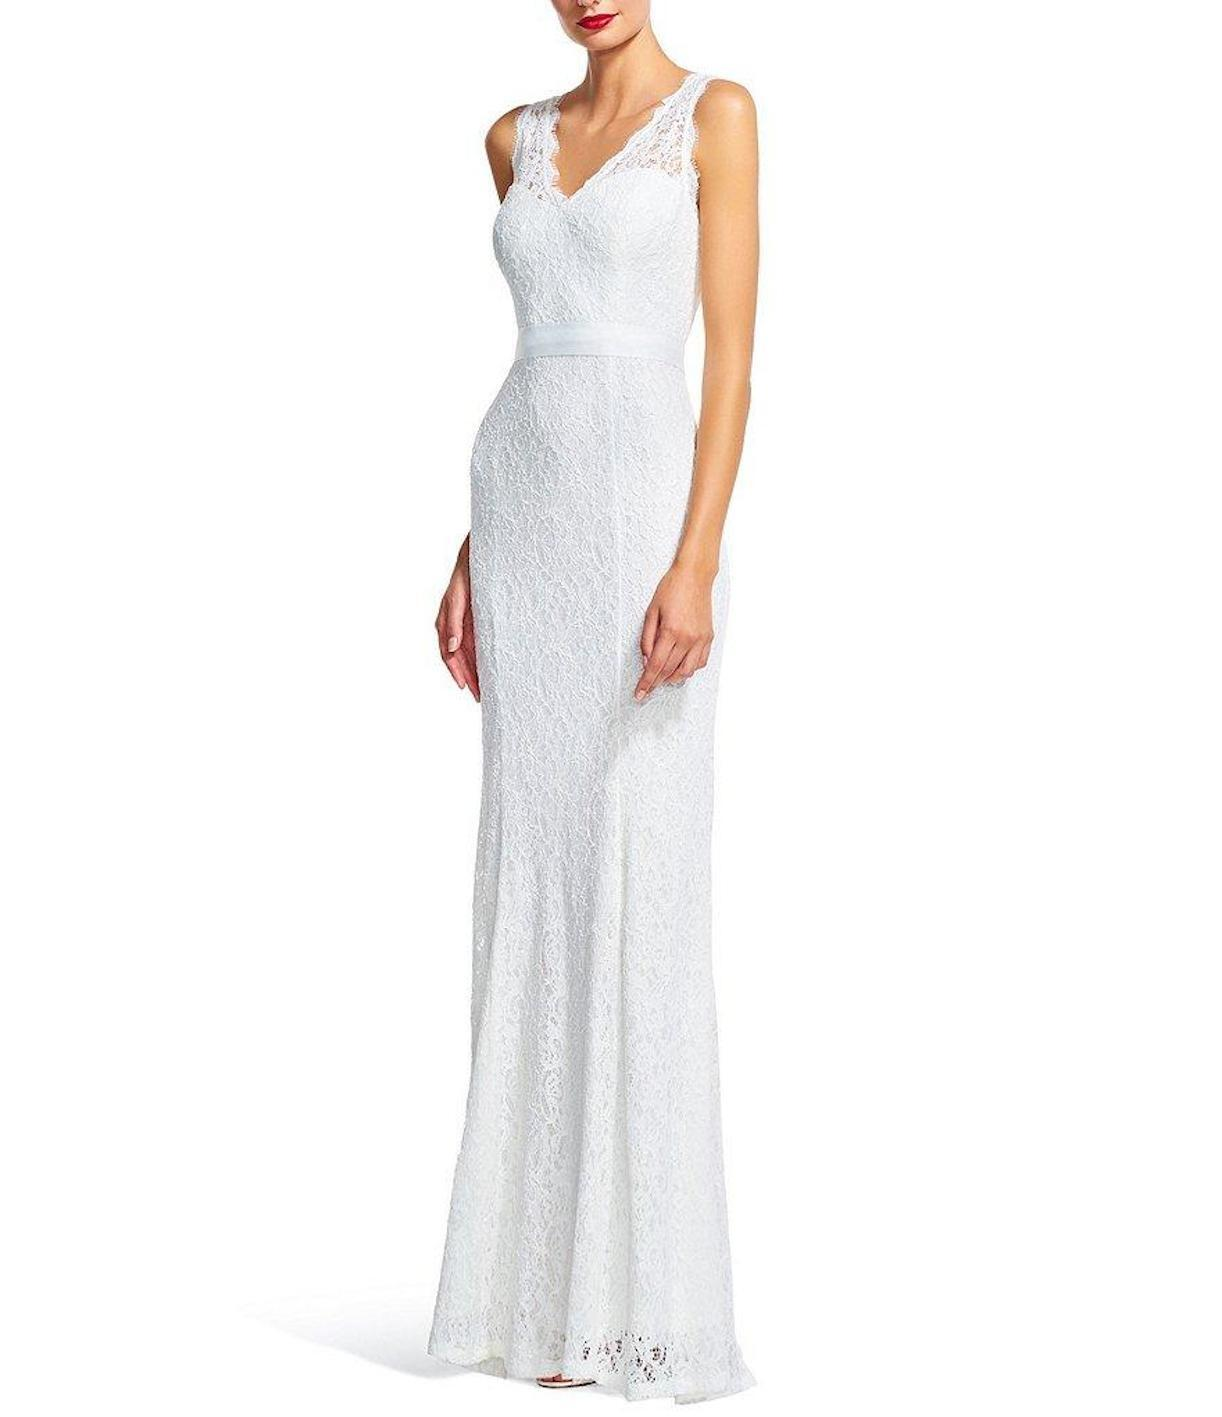 Adrianna Papell 091890120 Scalloped Ivory Lace Long Gown Sz 8 NWT ...